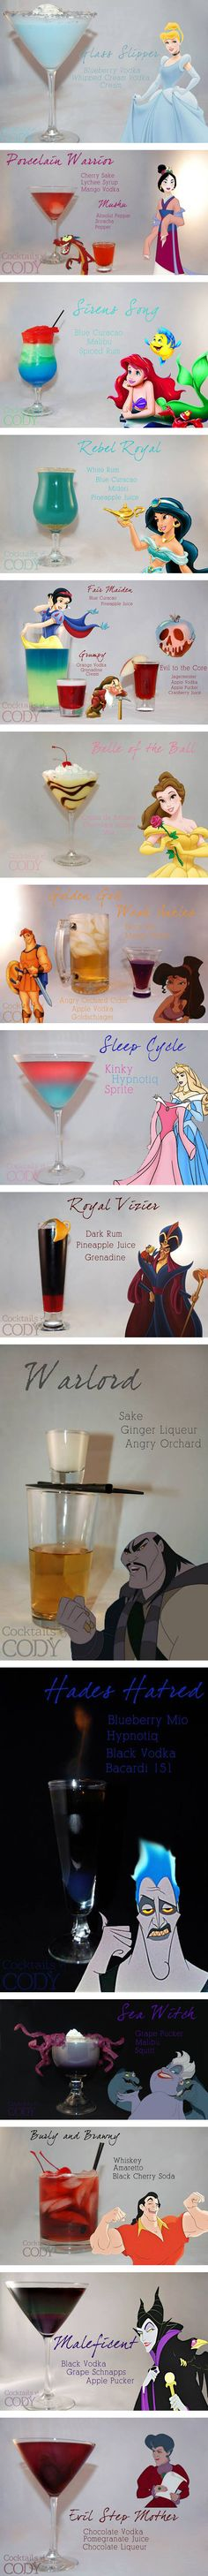 Disney princess themed cocktails